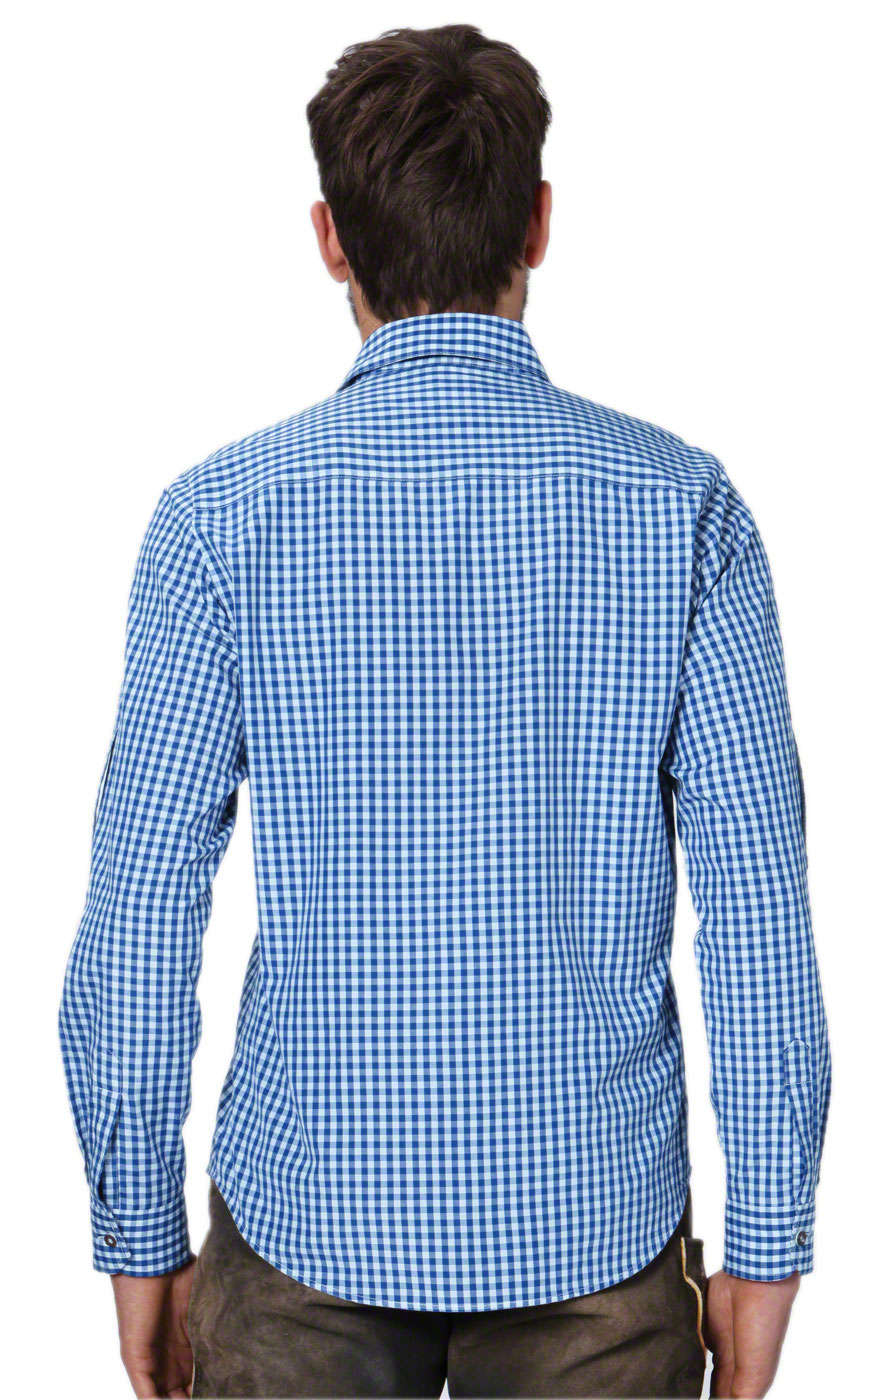 weitere Bilder von German traditional shirt checkered Campos2 blue